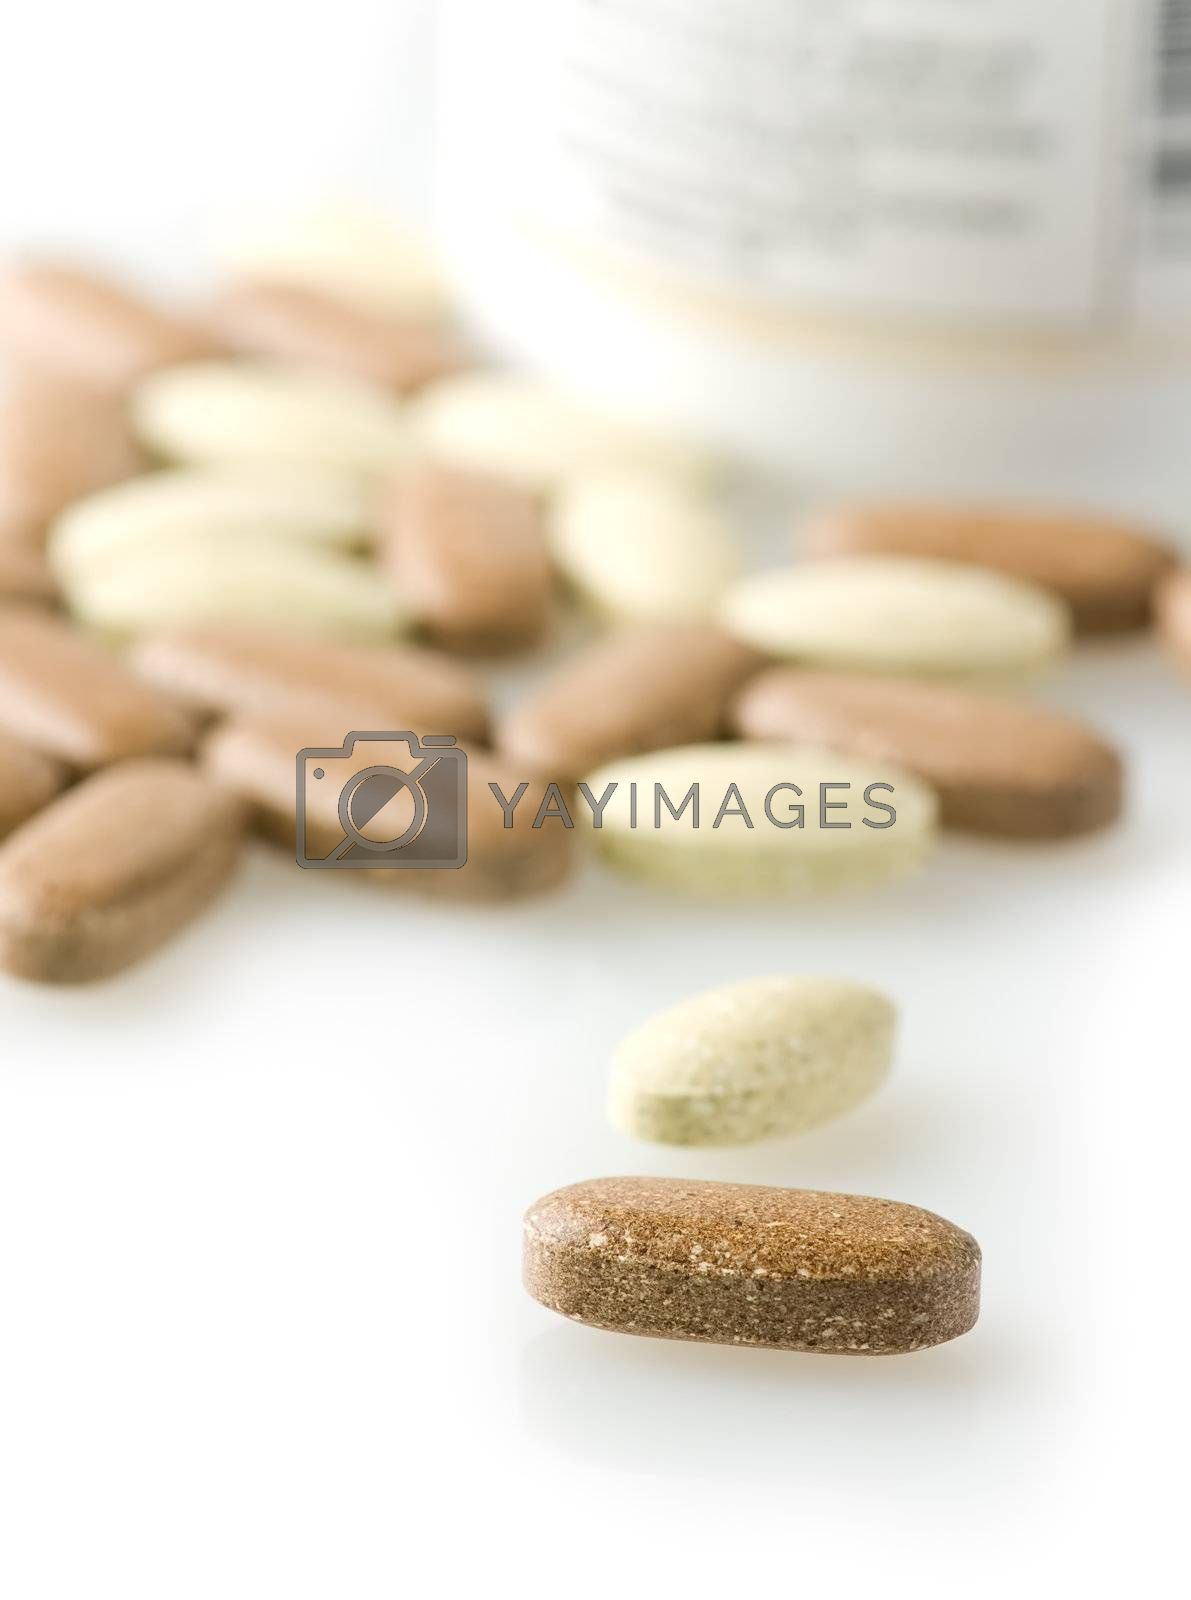 Royalty free image of Nutritional supplements by iribo